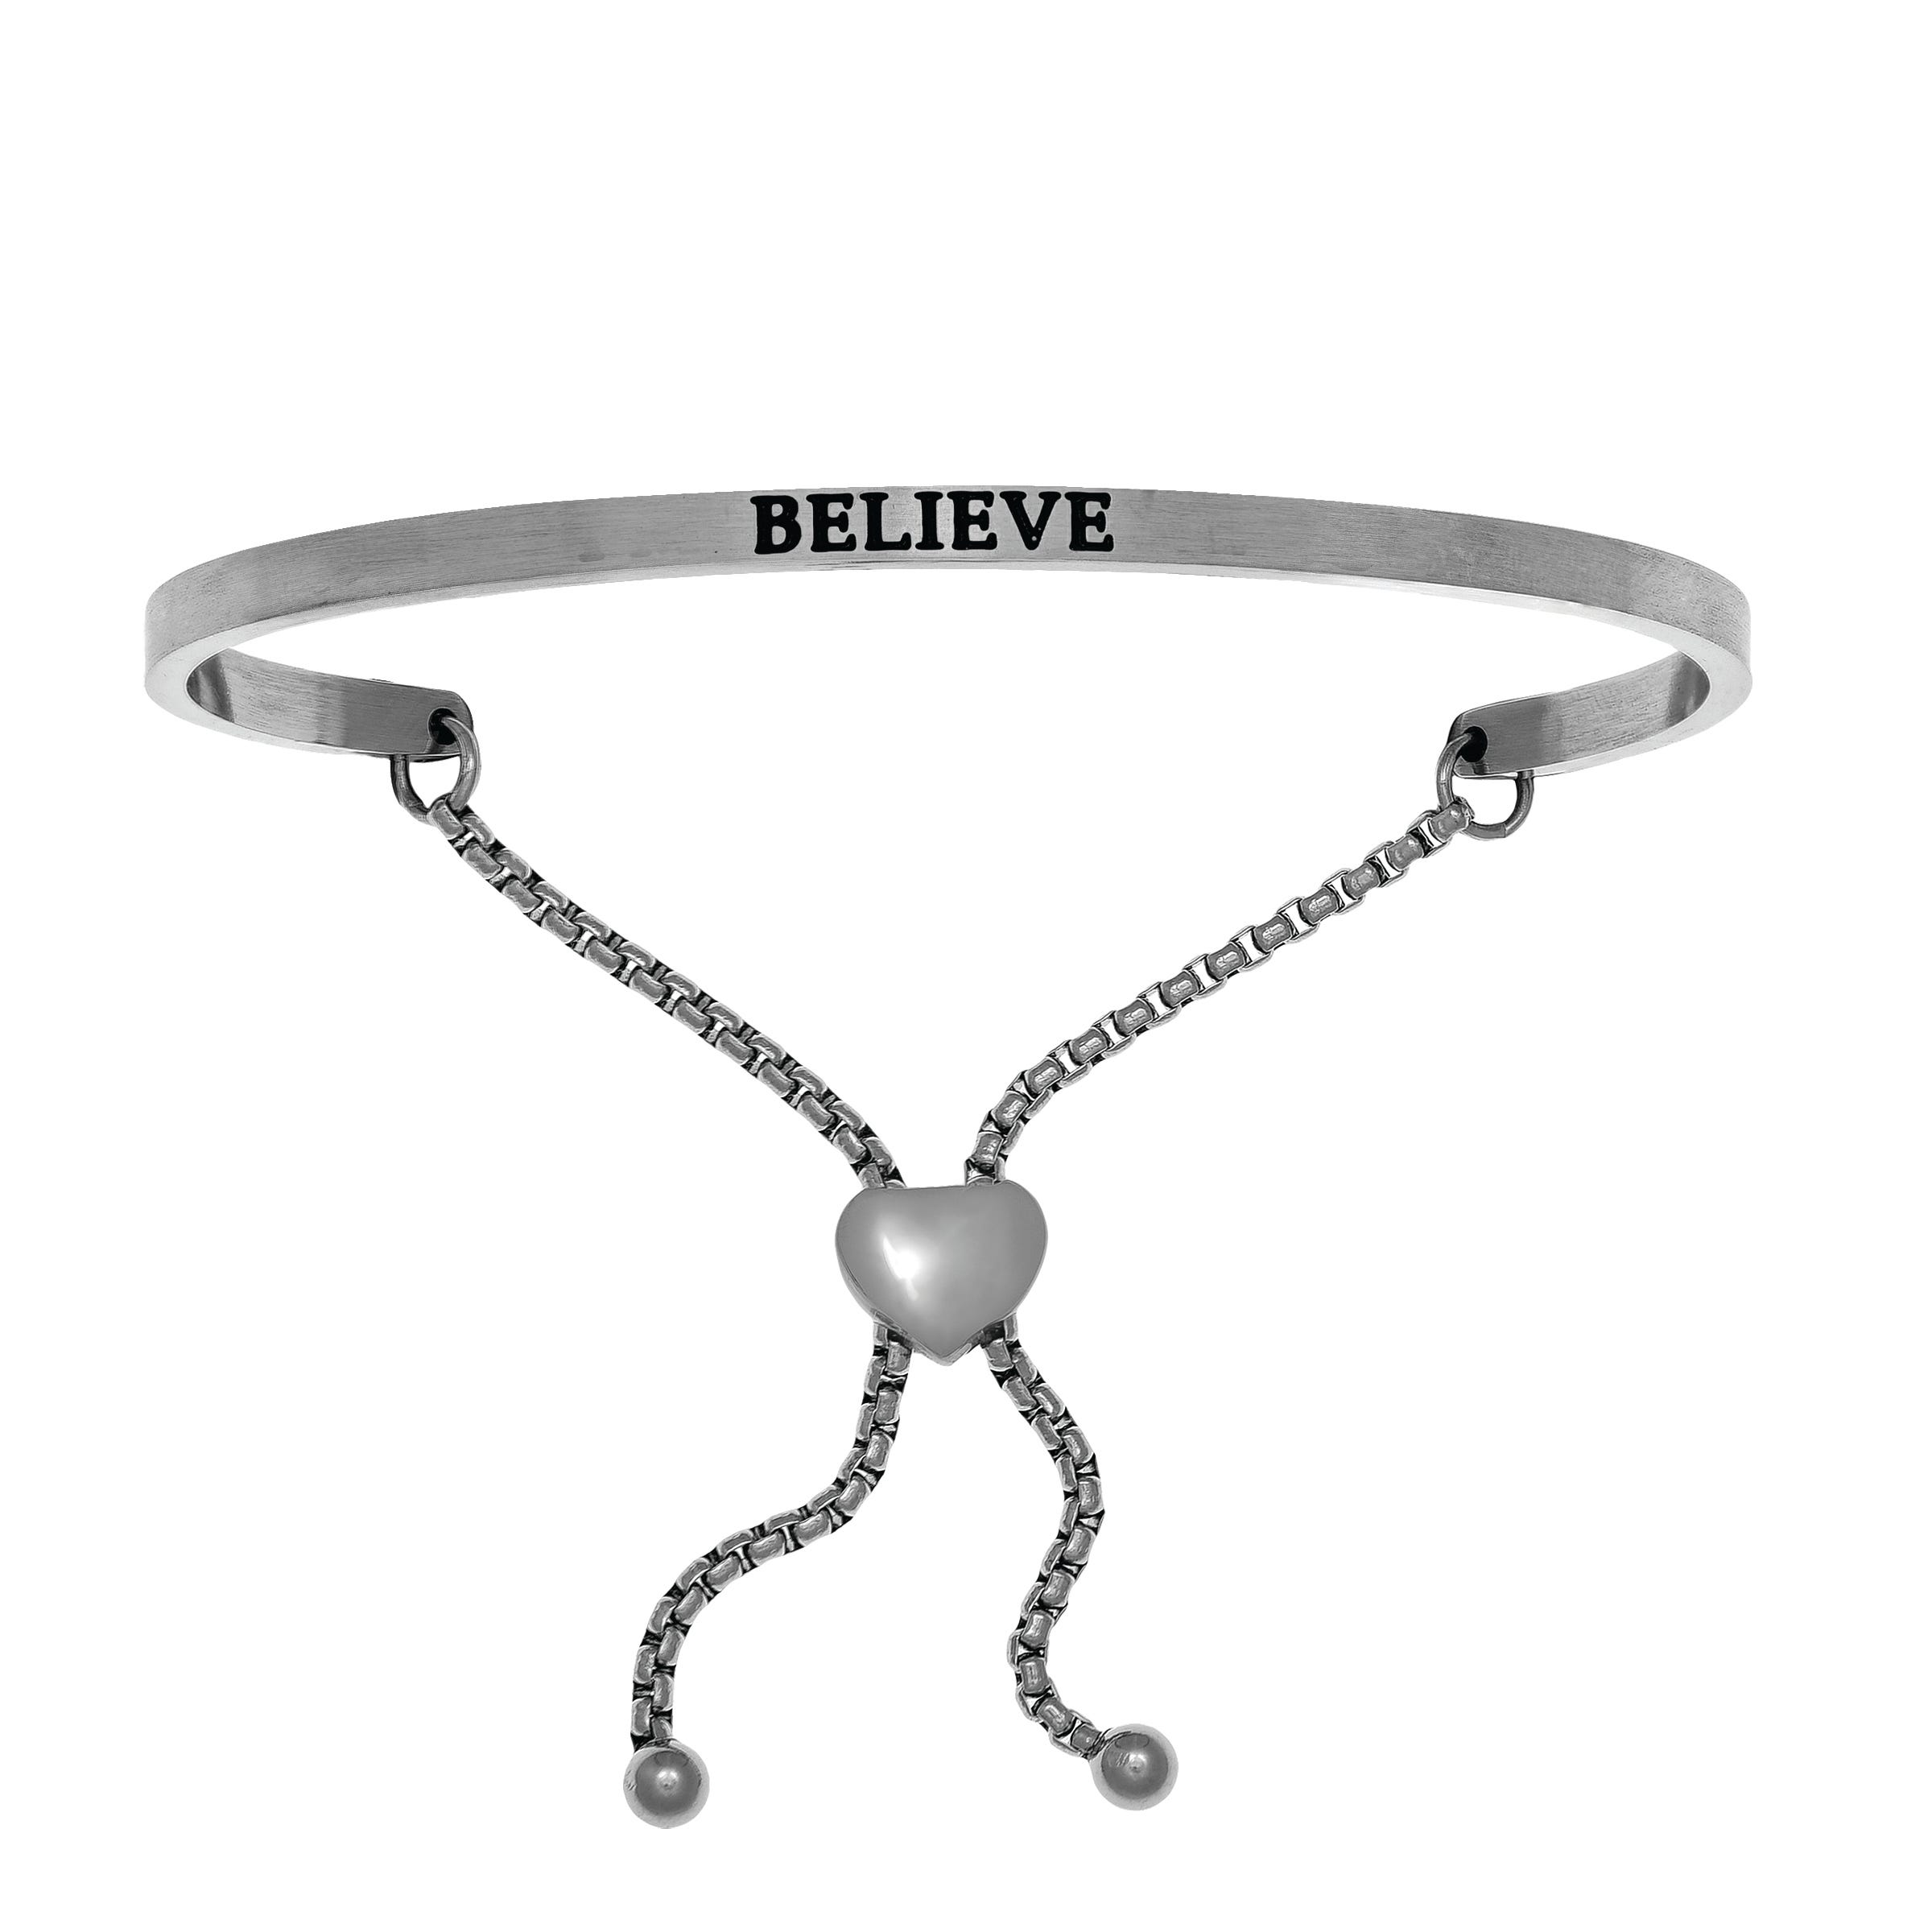 Believe. Intuitions Bolo Bracelet in White Stainless Steel